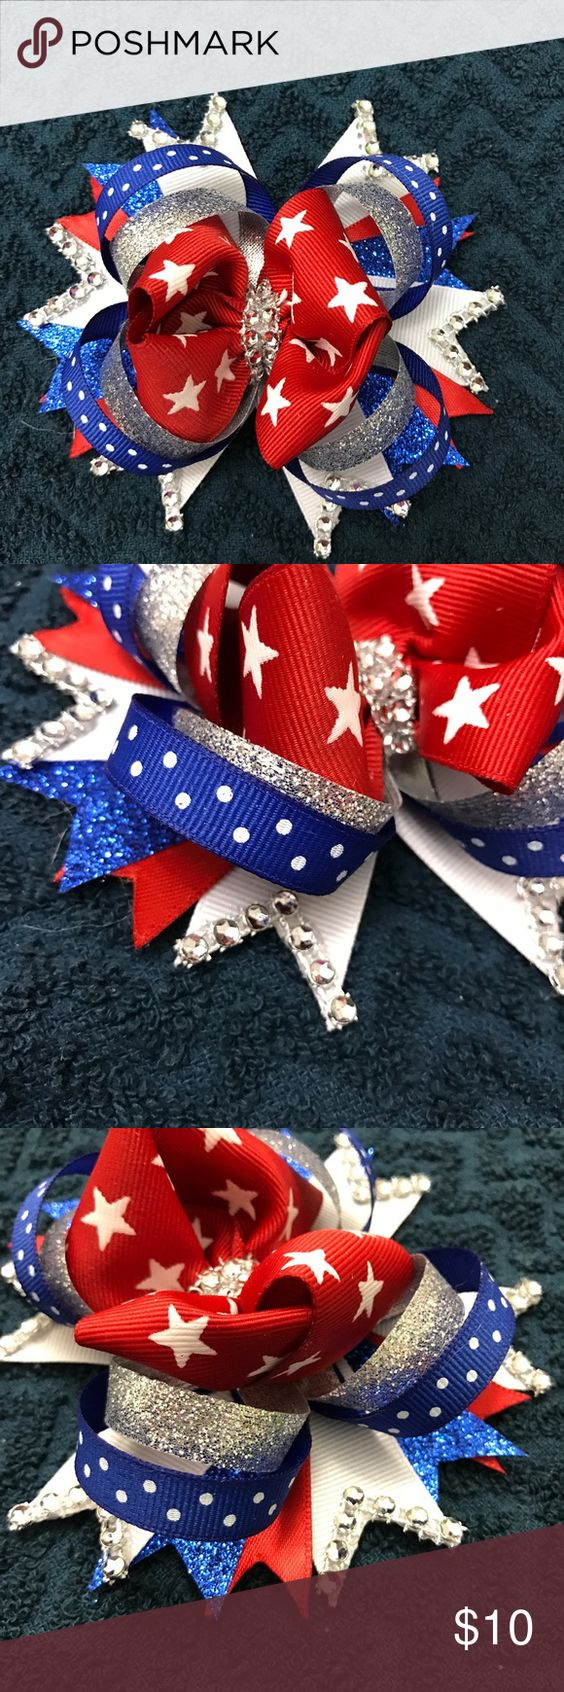 Red White and Blue boutique hair bow clip on brand new handmade never worn Accessories Hair Accessories